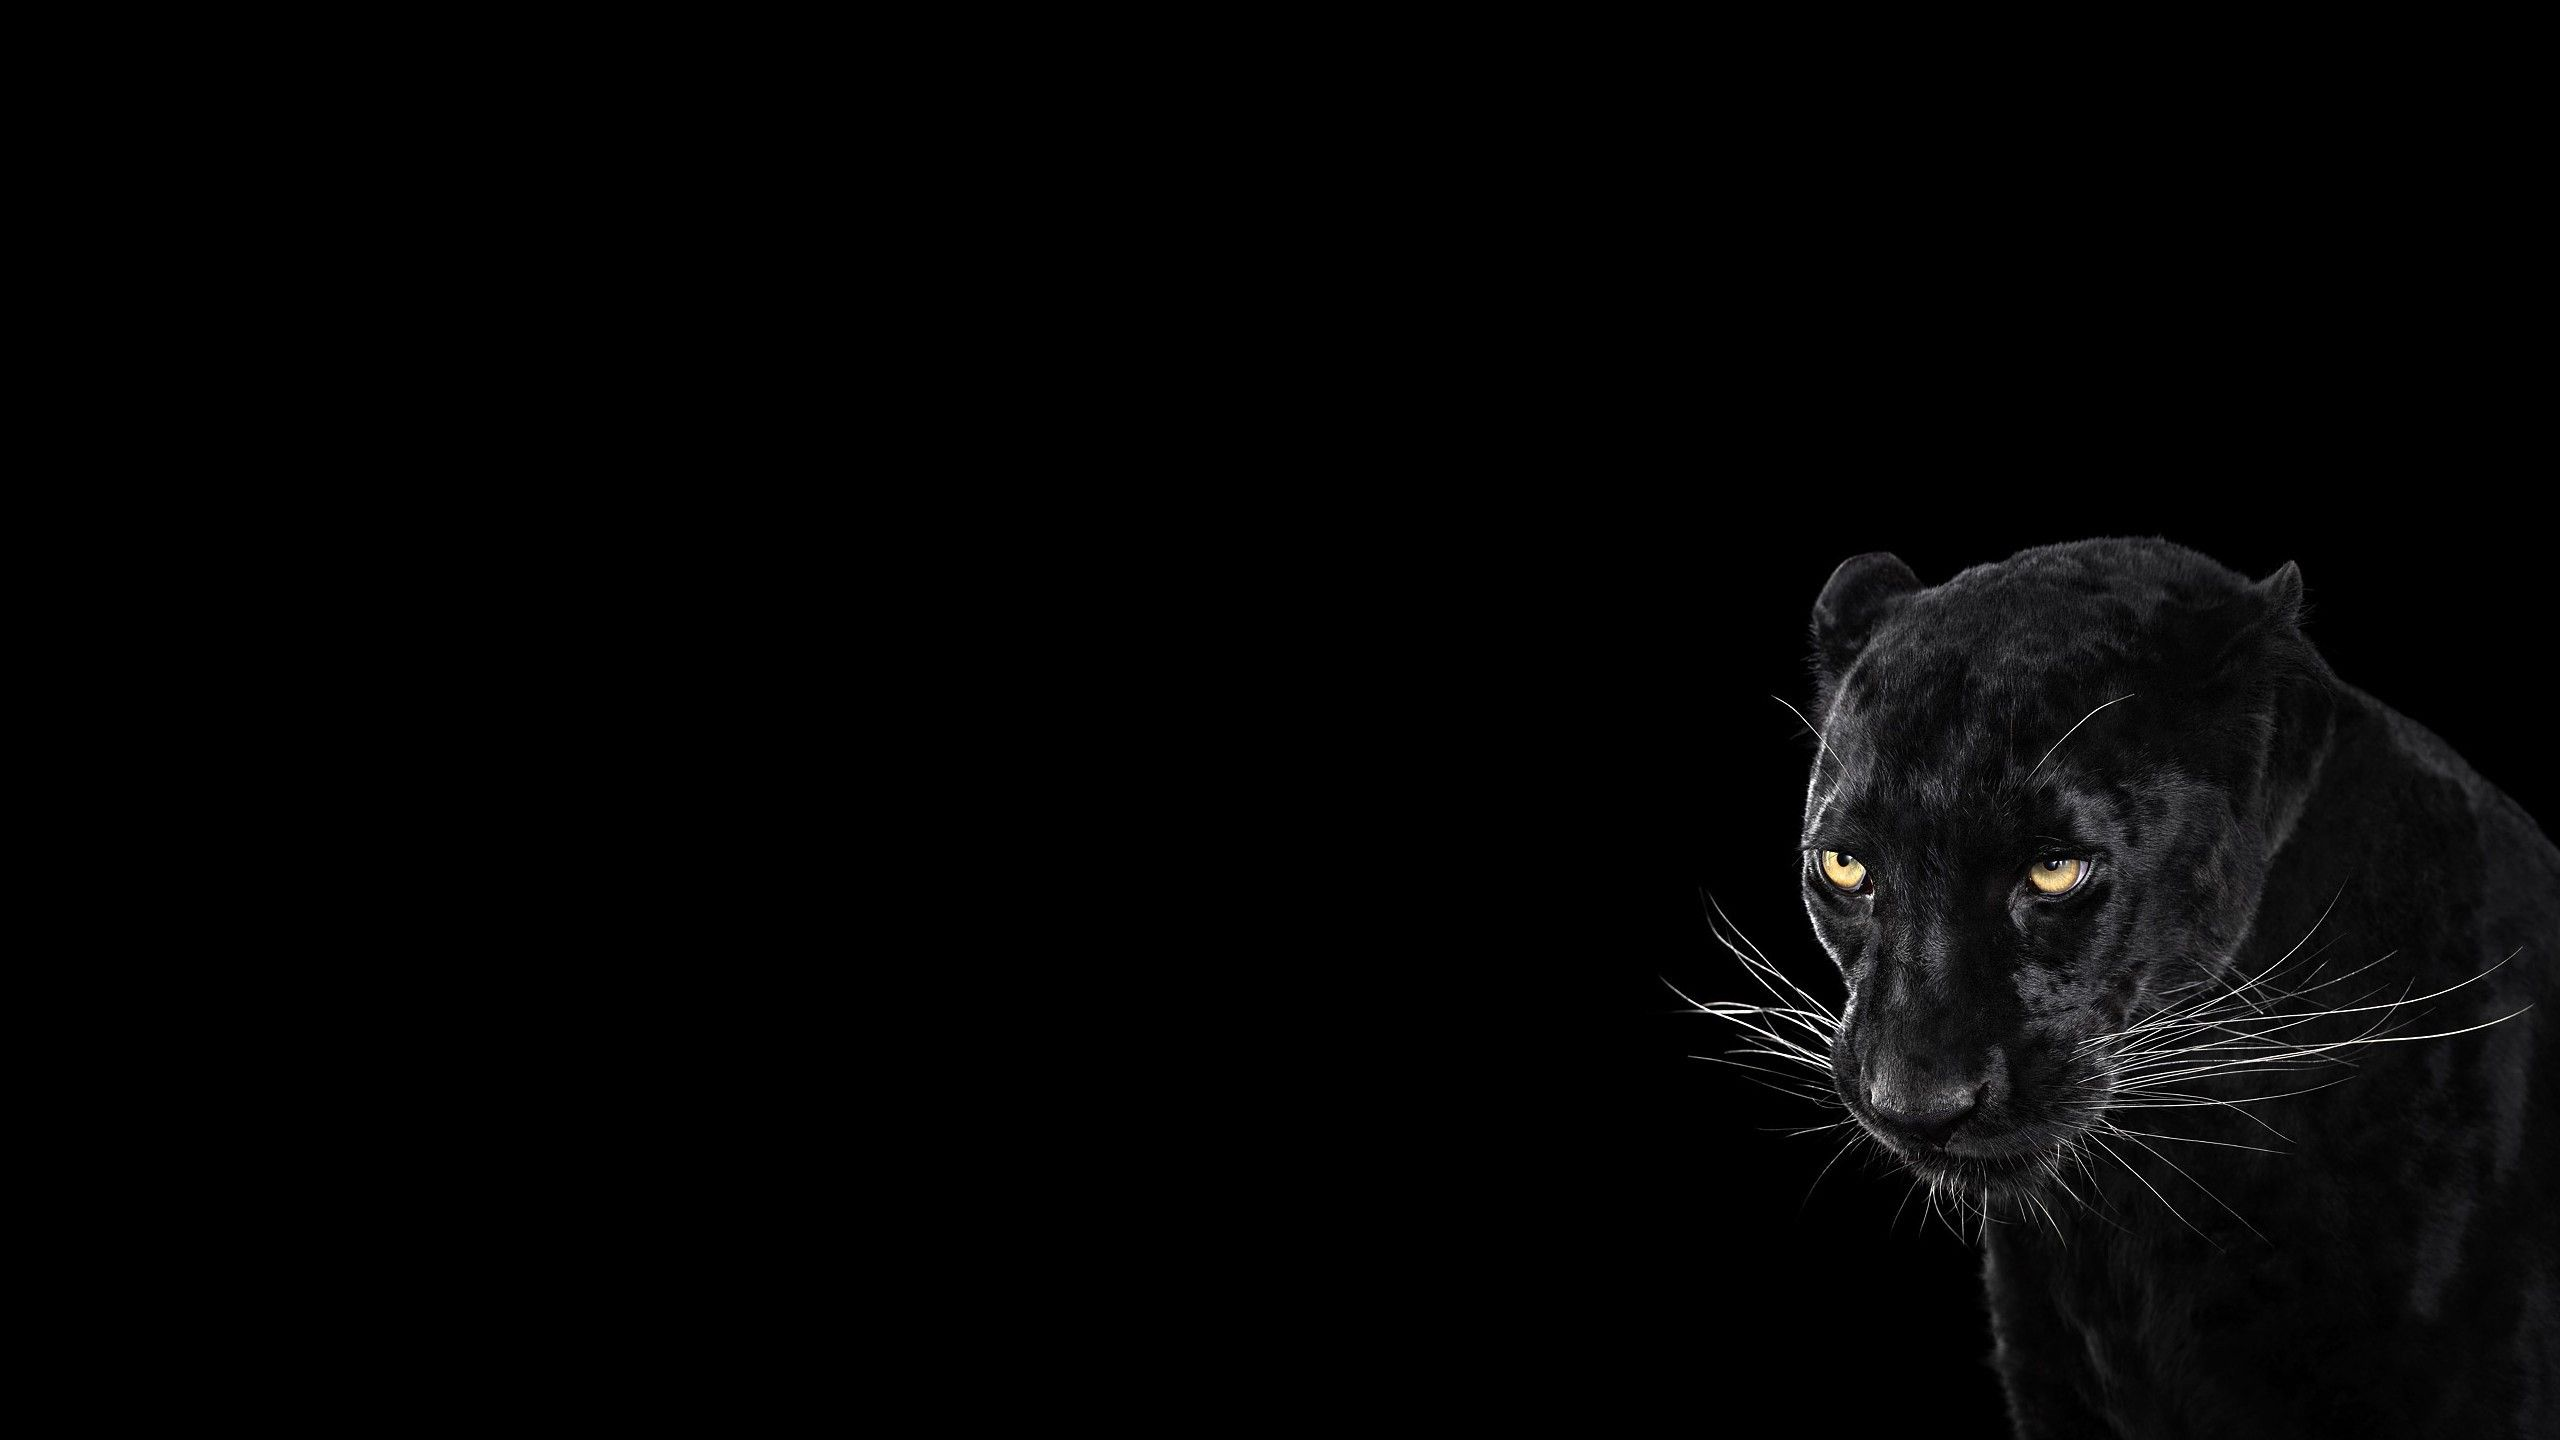 Black Jaguar Wallpaper Hd